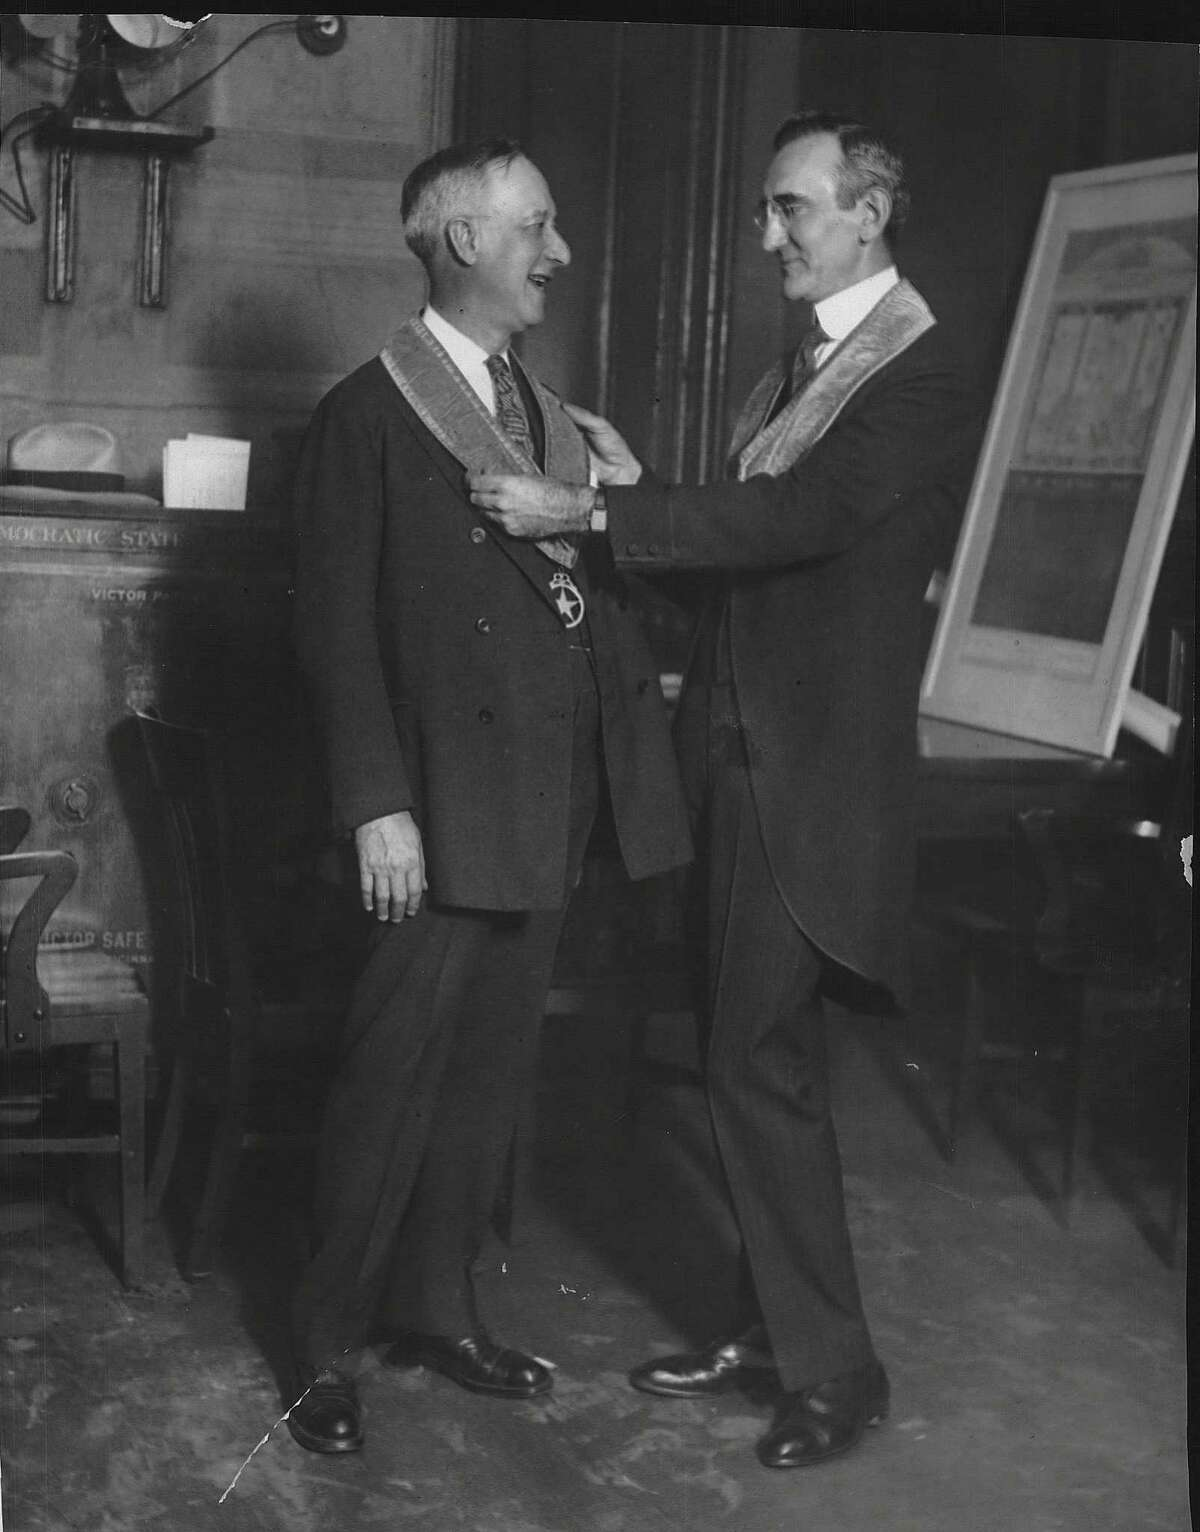 New York City--On the 139th birthday of the Tammany Society of New York, Governor Alfred E. Smith was formally installed as Sachem of the Society, by surrogate James A. Foley, who presided over the ceremonies tonight. Photo shows left to right Governor Alfred E. Smith and Judge Foley. May 14, 1928 (Times Union Archive)